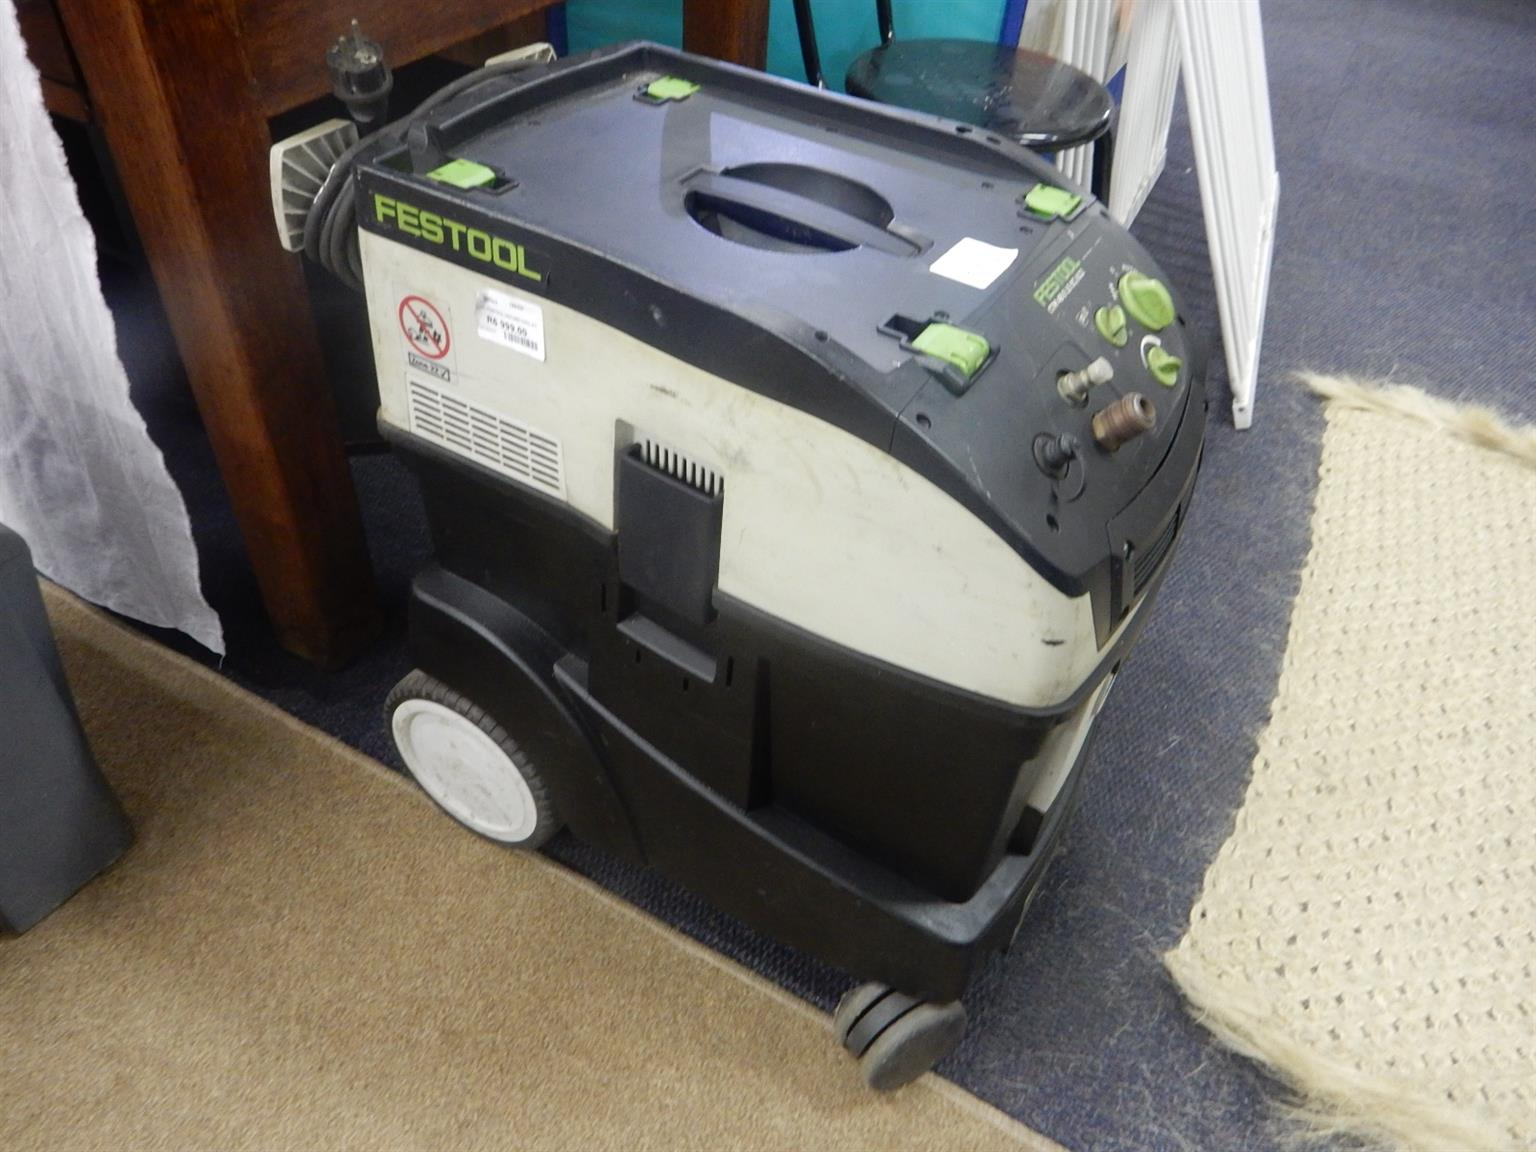 Festool Cleantex Vacuum Cleaner